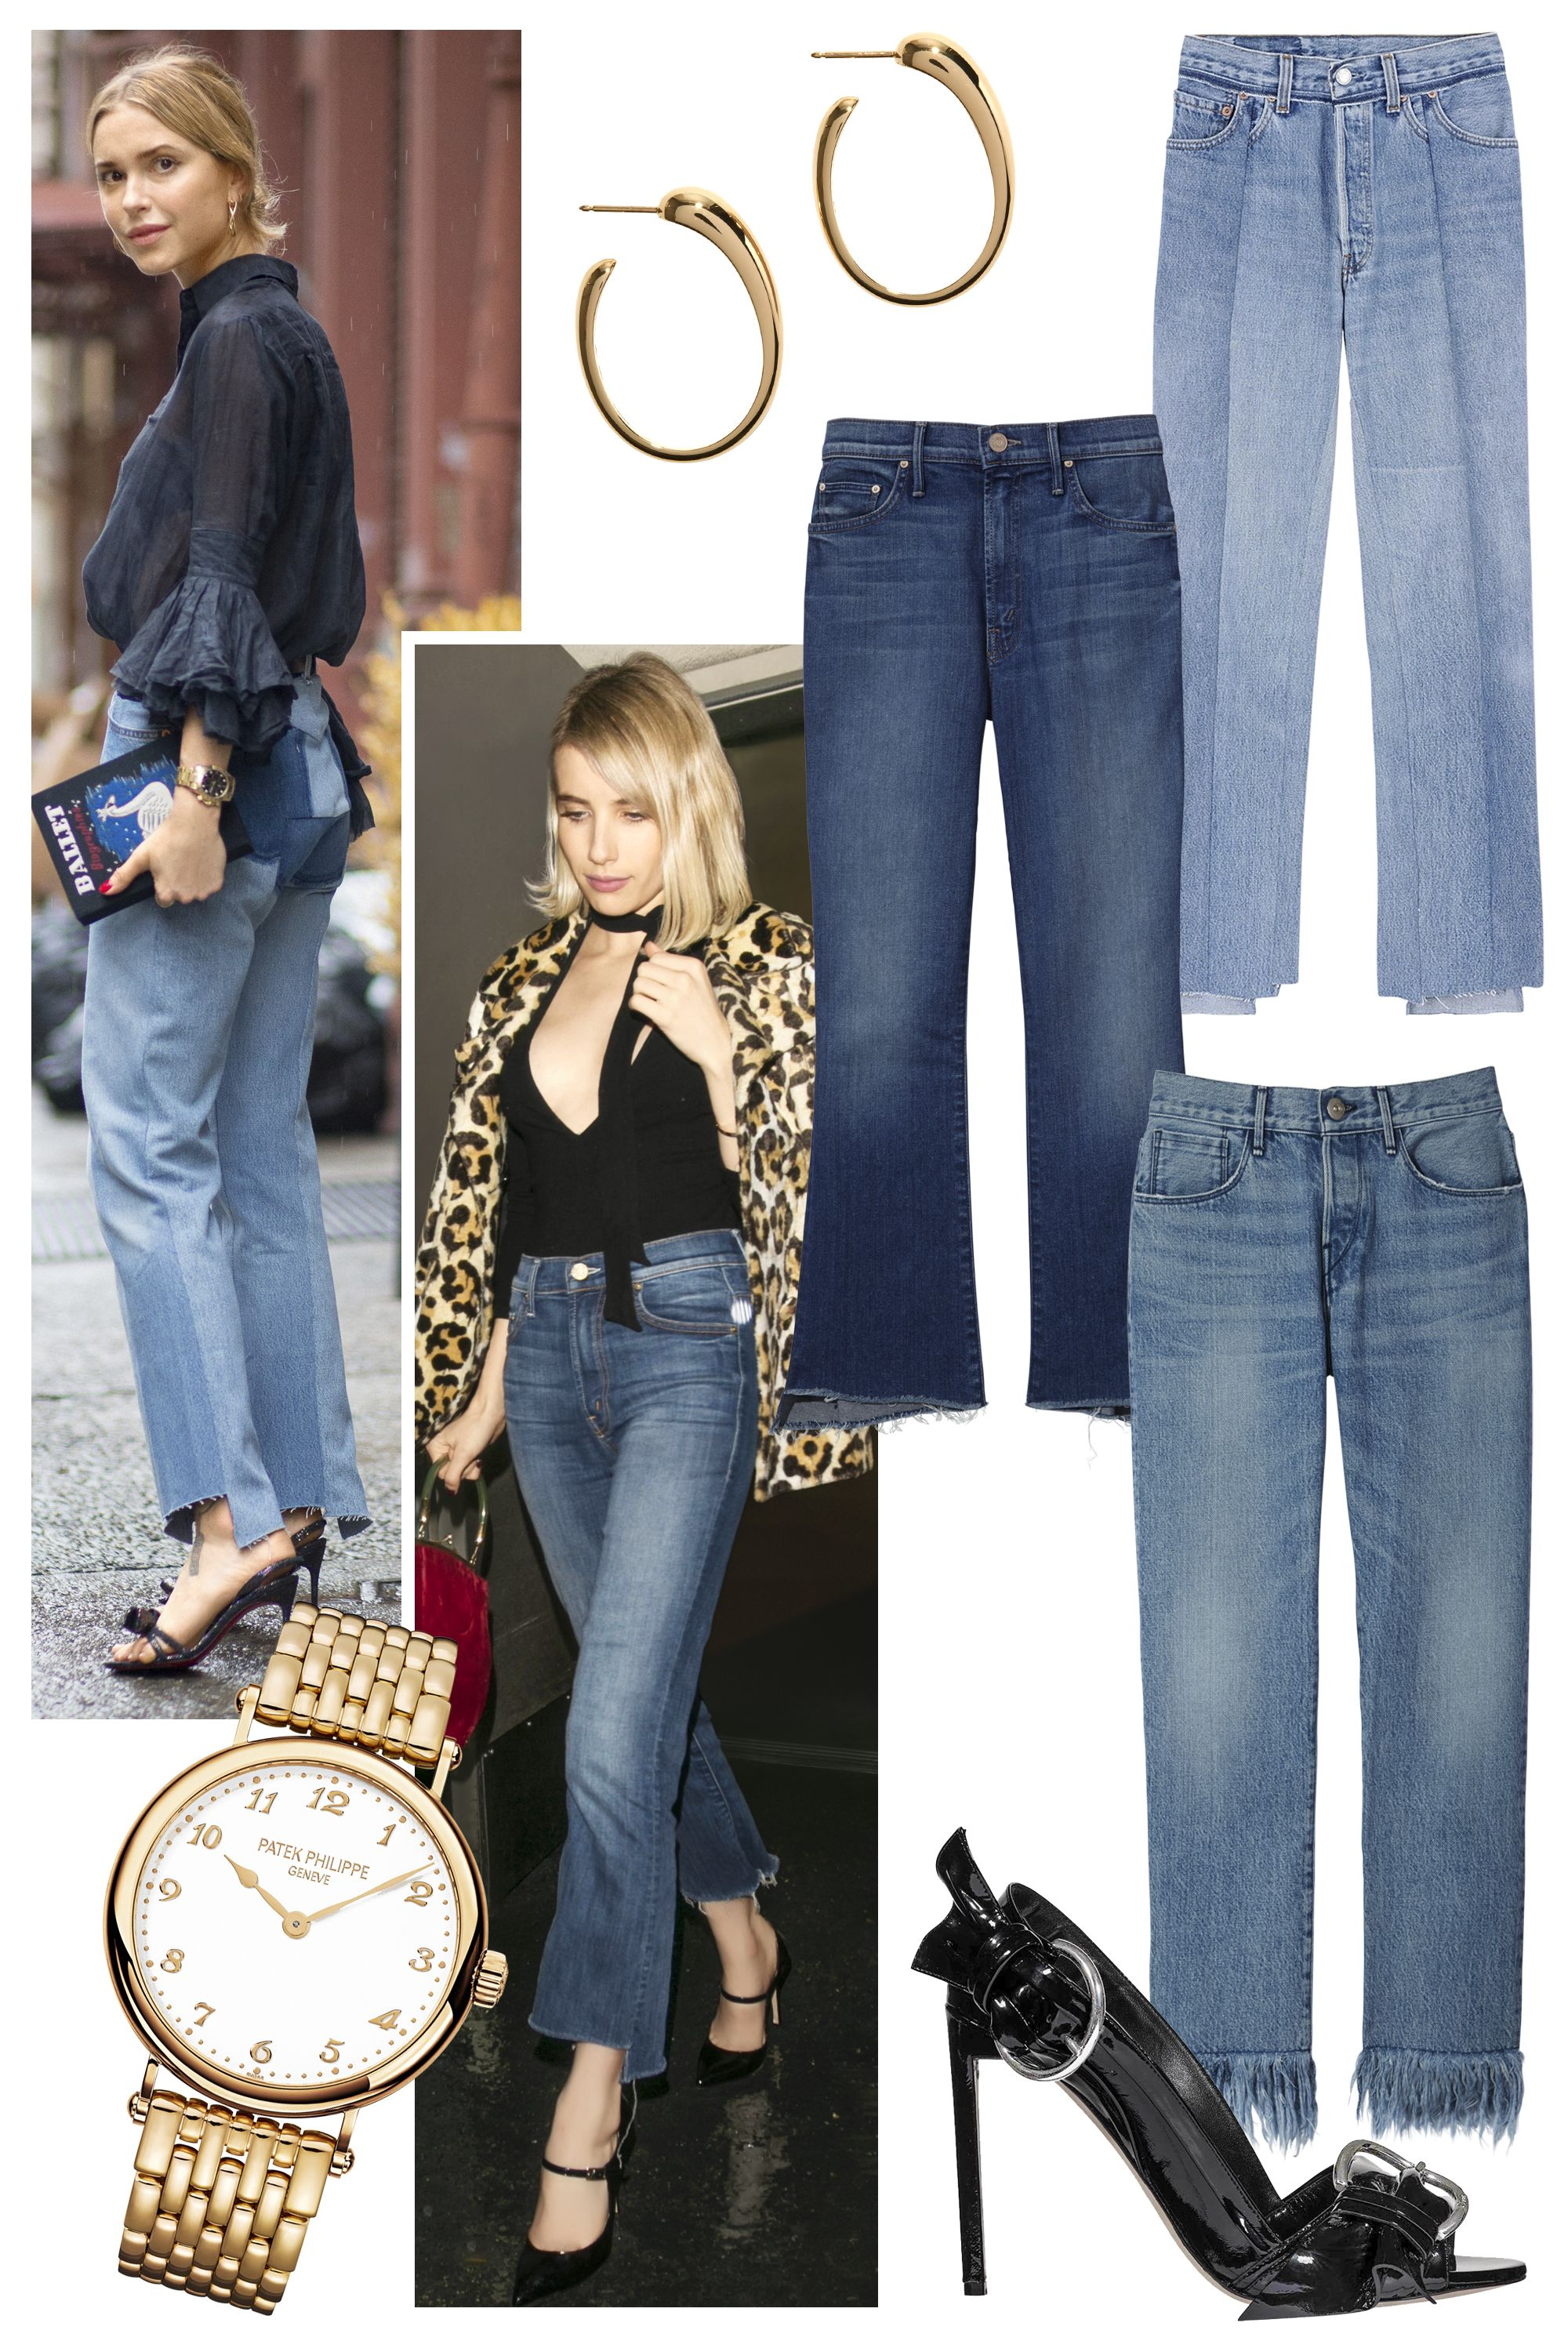 "<p>Ever since the German label Vetements showed its must-have denim for Spring 2015 with frayed, uneven hems, It girls everywhere have taken a liking to the statement style. Let your legs do the talking and wear them with classic accessories like black stilettos and gold jewelry, à la Pernille Teisbaek.</p><p>Pernille Teisbaek in Vetements jeans<span class=""redactor-invisible-space"">; Emma Roberts in Mother jeans<span class=""redactor-invisible-space"">;</span> <strong>Pomellato</strong> earrings, $5,600, 800-254-6020; <strong>Vetements</strong> jeans, $1,395, Dover Street Market, NYC, 646-837-7750, <strong>Mother </strong>jeans, $208,  <a href=""http://www.motherdenim.com/"">motherdenim.com</a><span class=""redactor-invisible-space"">; <strong>3x1</strong> jeans, $295, 212-391-6969; <strong>Patek Philippe </strong>watch, 212-218-1240; <strong>Dior</strong> shoe, $1,040; 800-929-DIOR.</span></span></p>"